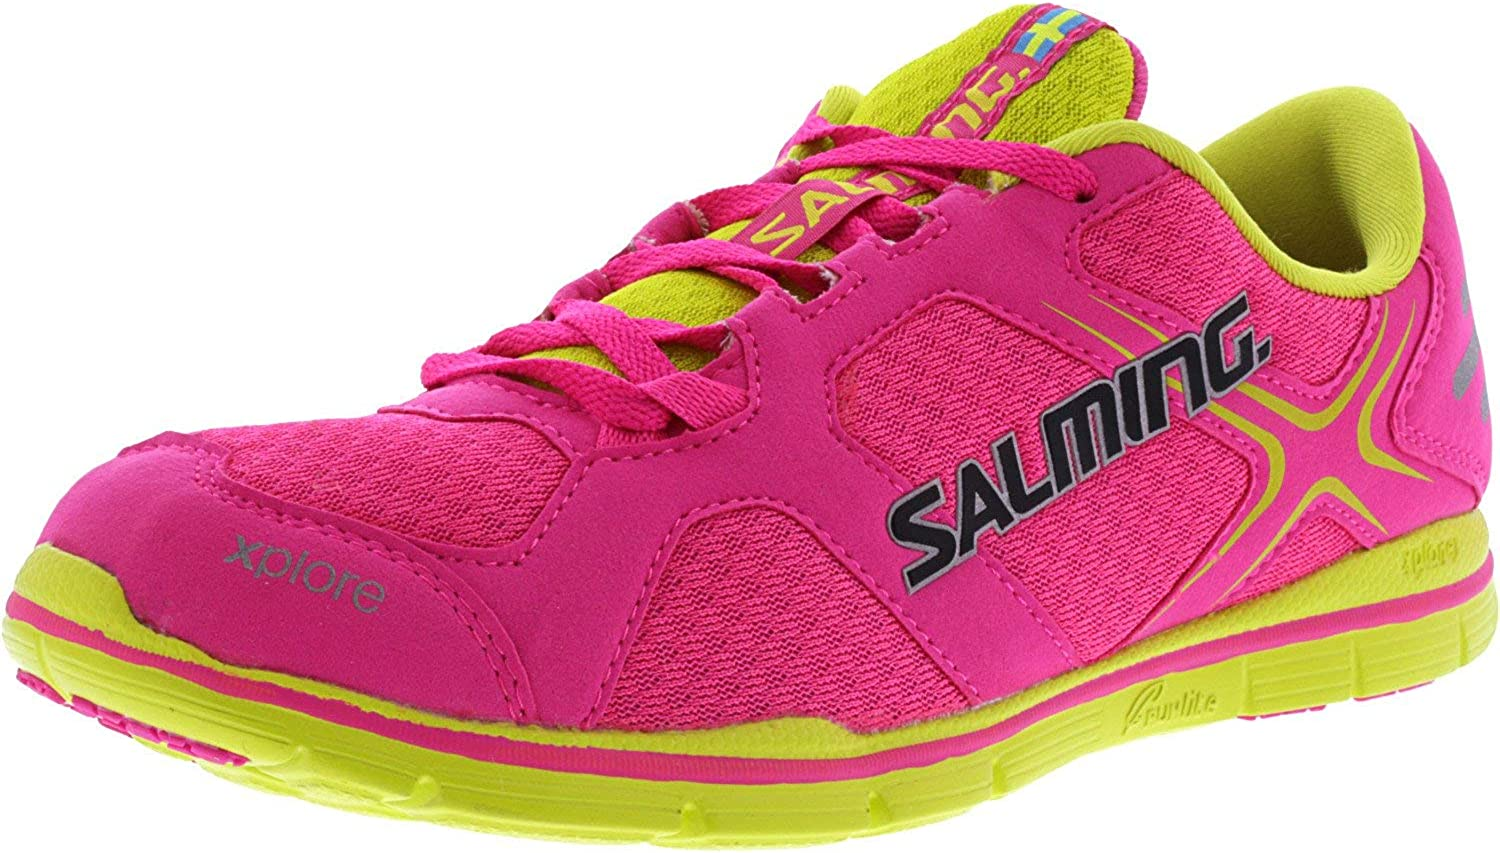 Salming Women's Xplore 2.0 Ankle-High Running shoes